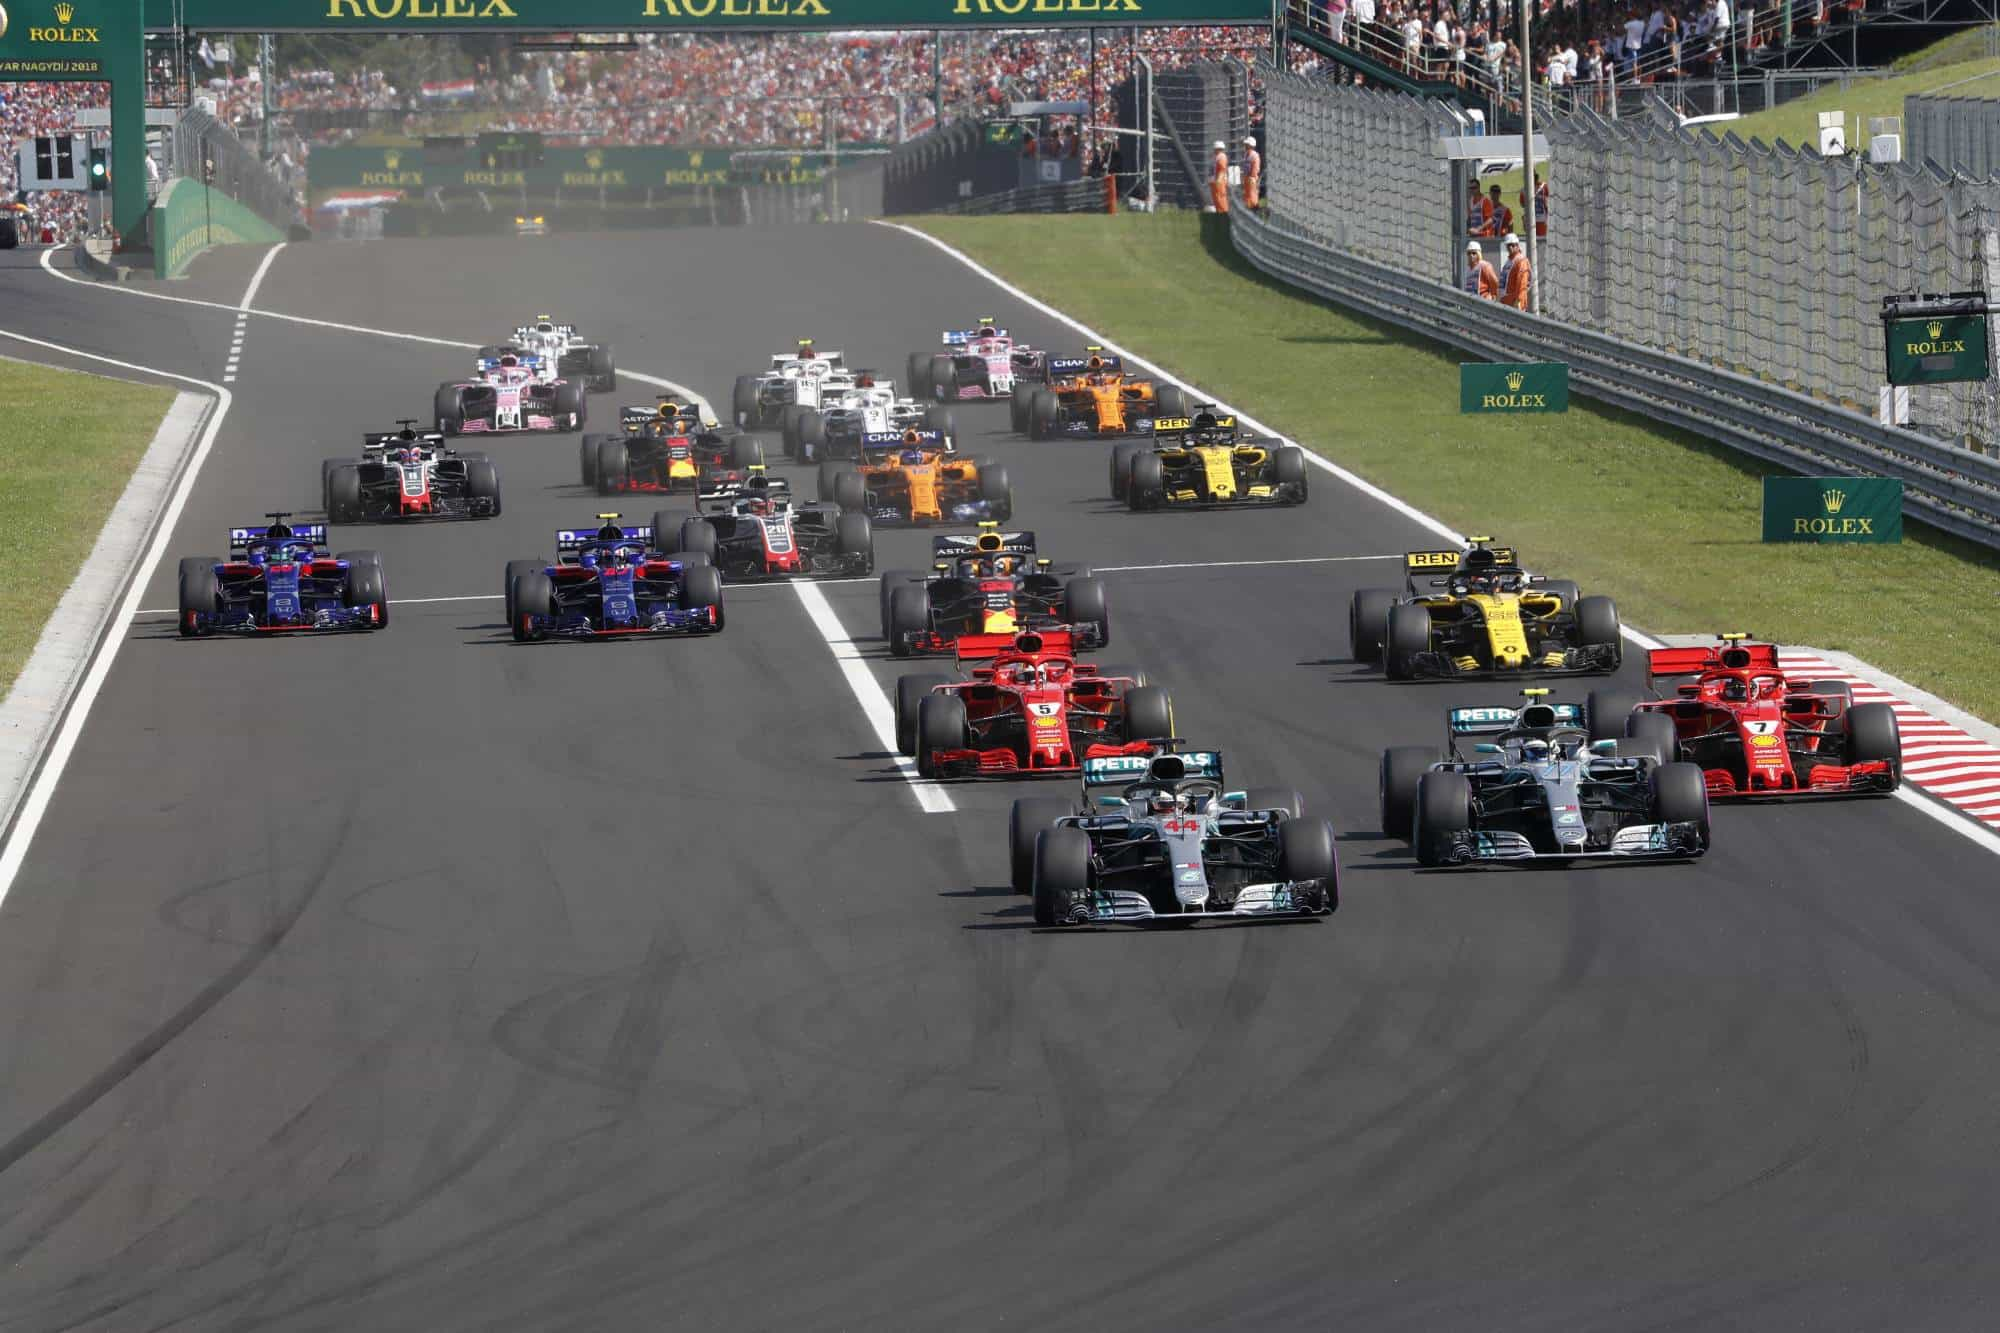 Hungarian GP F1 2018 start 2000 px Photo Daimler